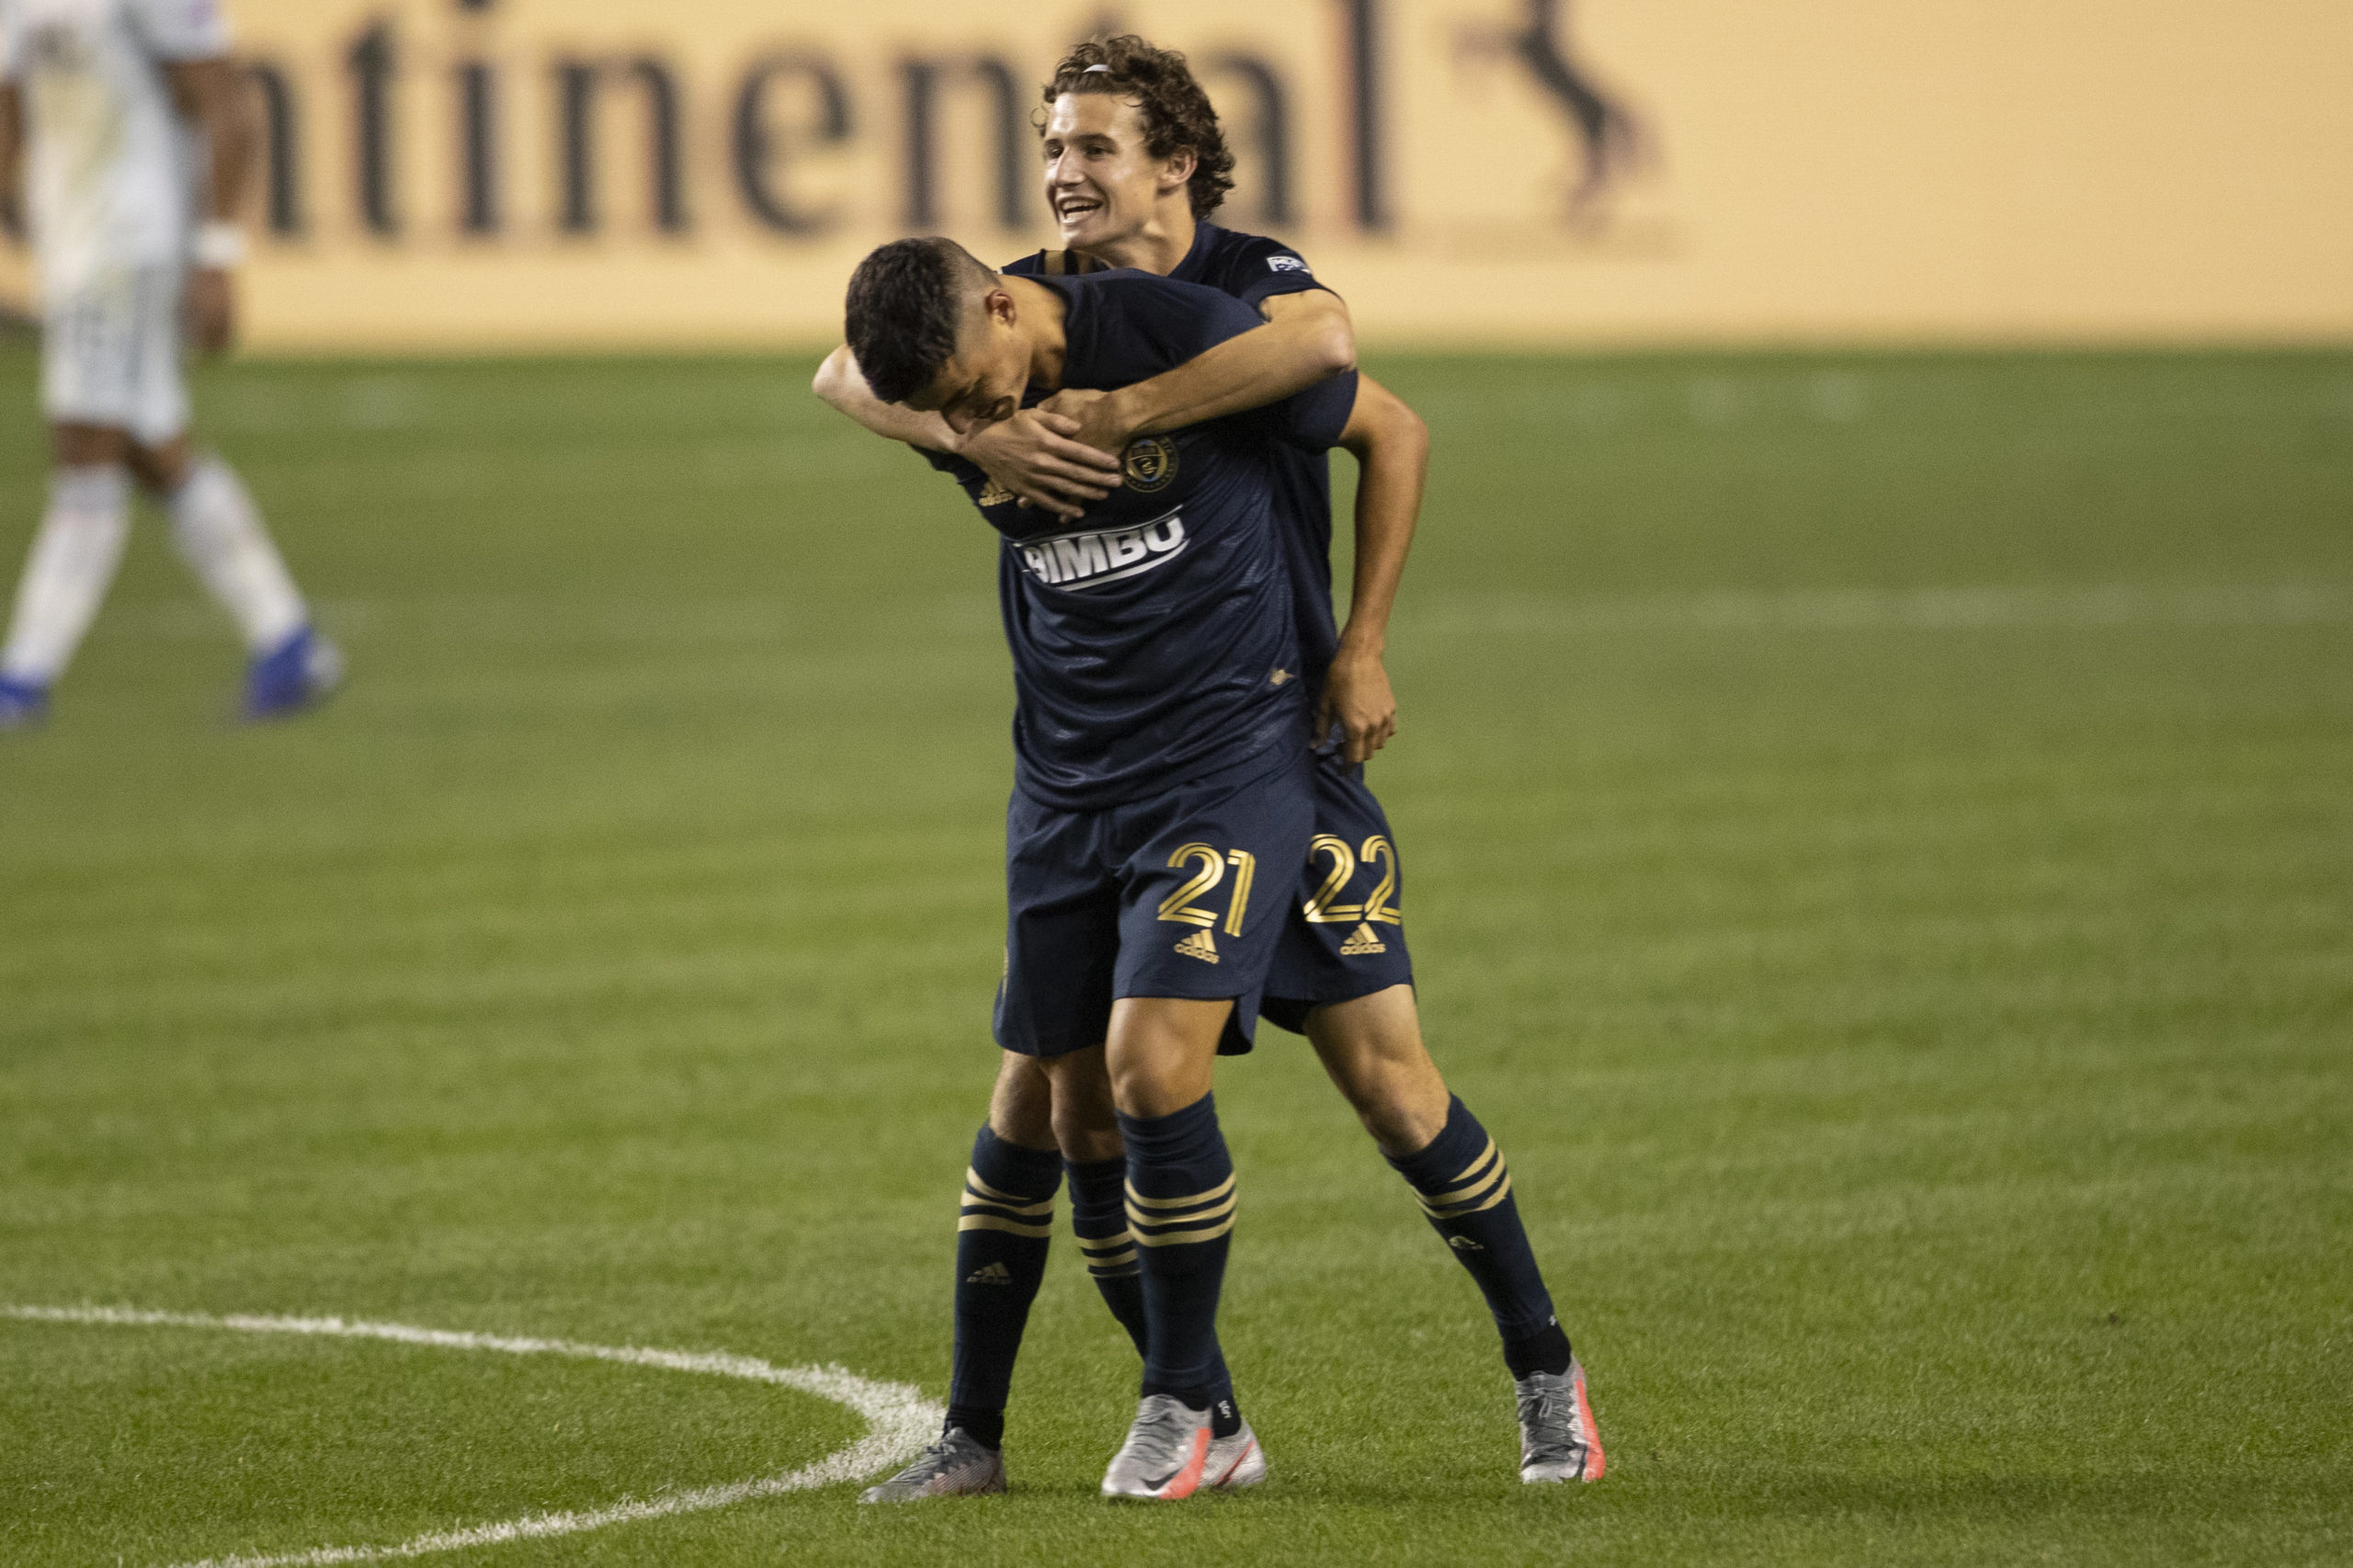 Celtic-linked Brenden Aaronson celebrates scoring for Philadelphia Union